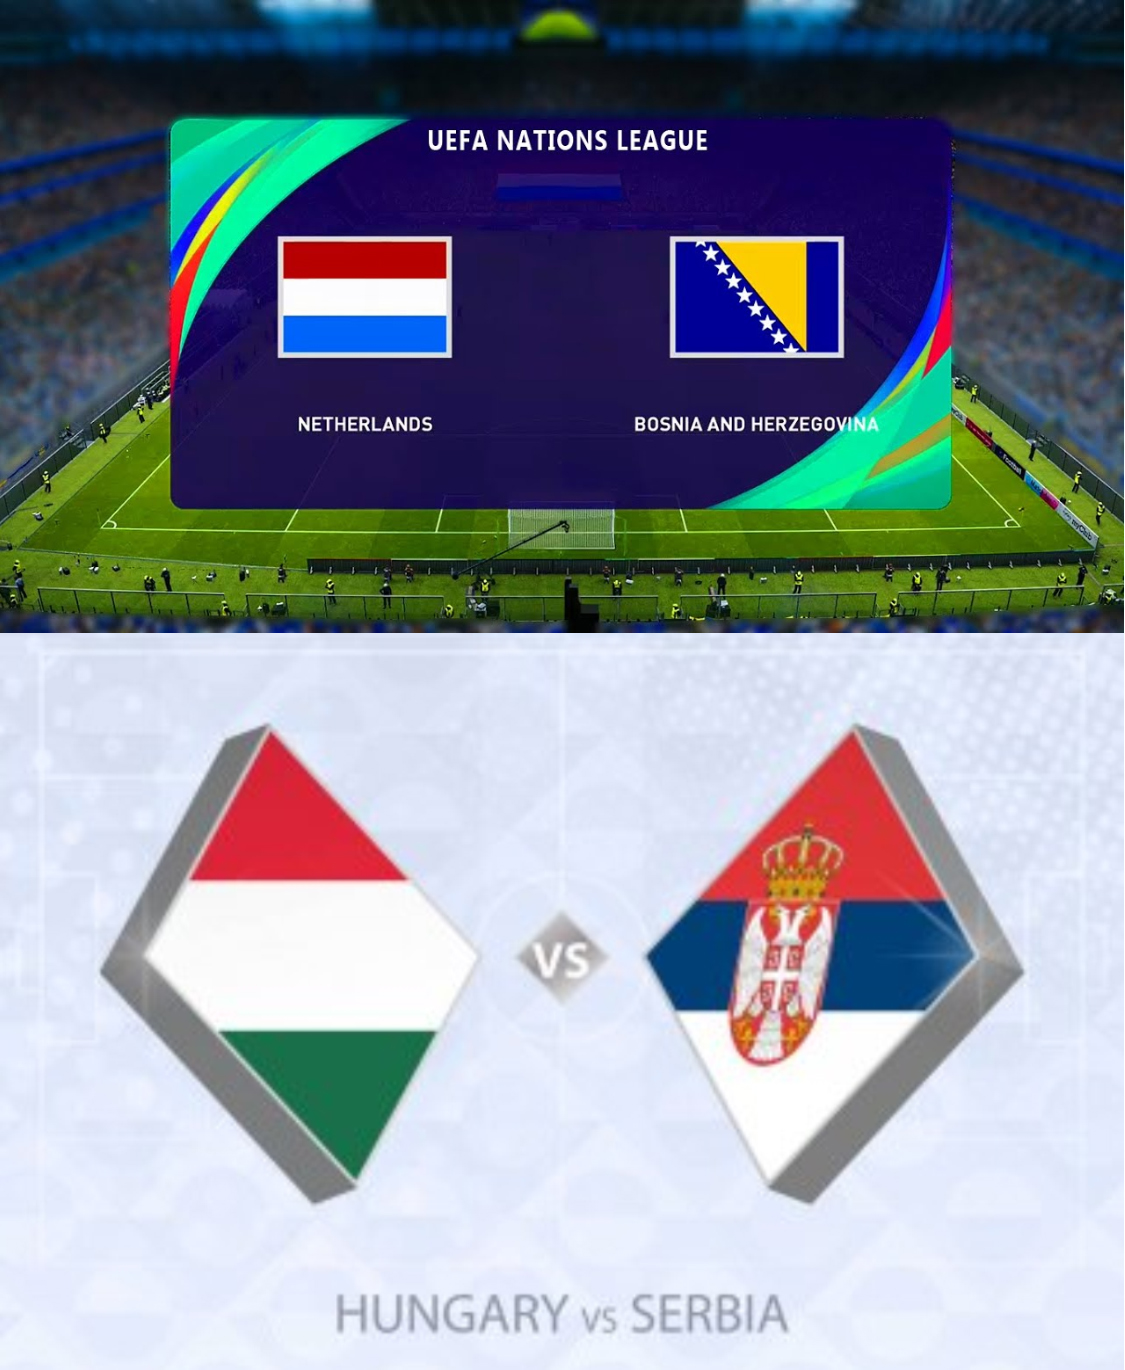 Netherlands,Bosnia,Herzegovina,Hungary,Serbia,free sports betting tip,free sports betting pick,bigstakers tips for today,high odd prediction tips,high stakes football betting tips,big odd tips. Netherlands v Bosnia and Herzegovina and Hungary v Serbia - FREE SPORTS BETTING TIP, FREE SPORTS BETTING PICK (15-11-2020)